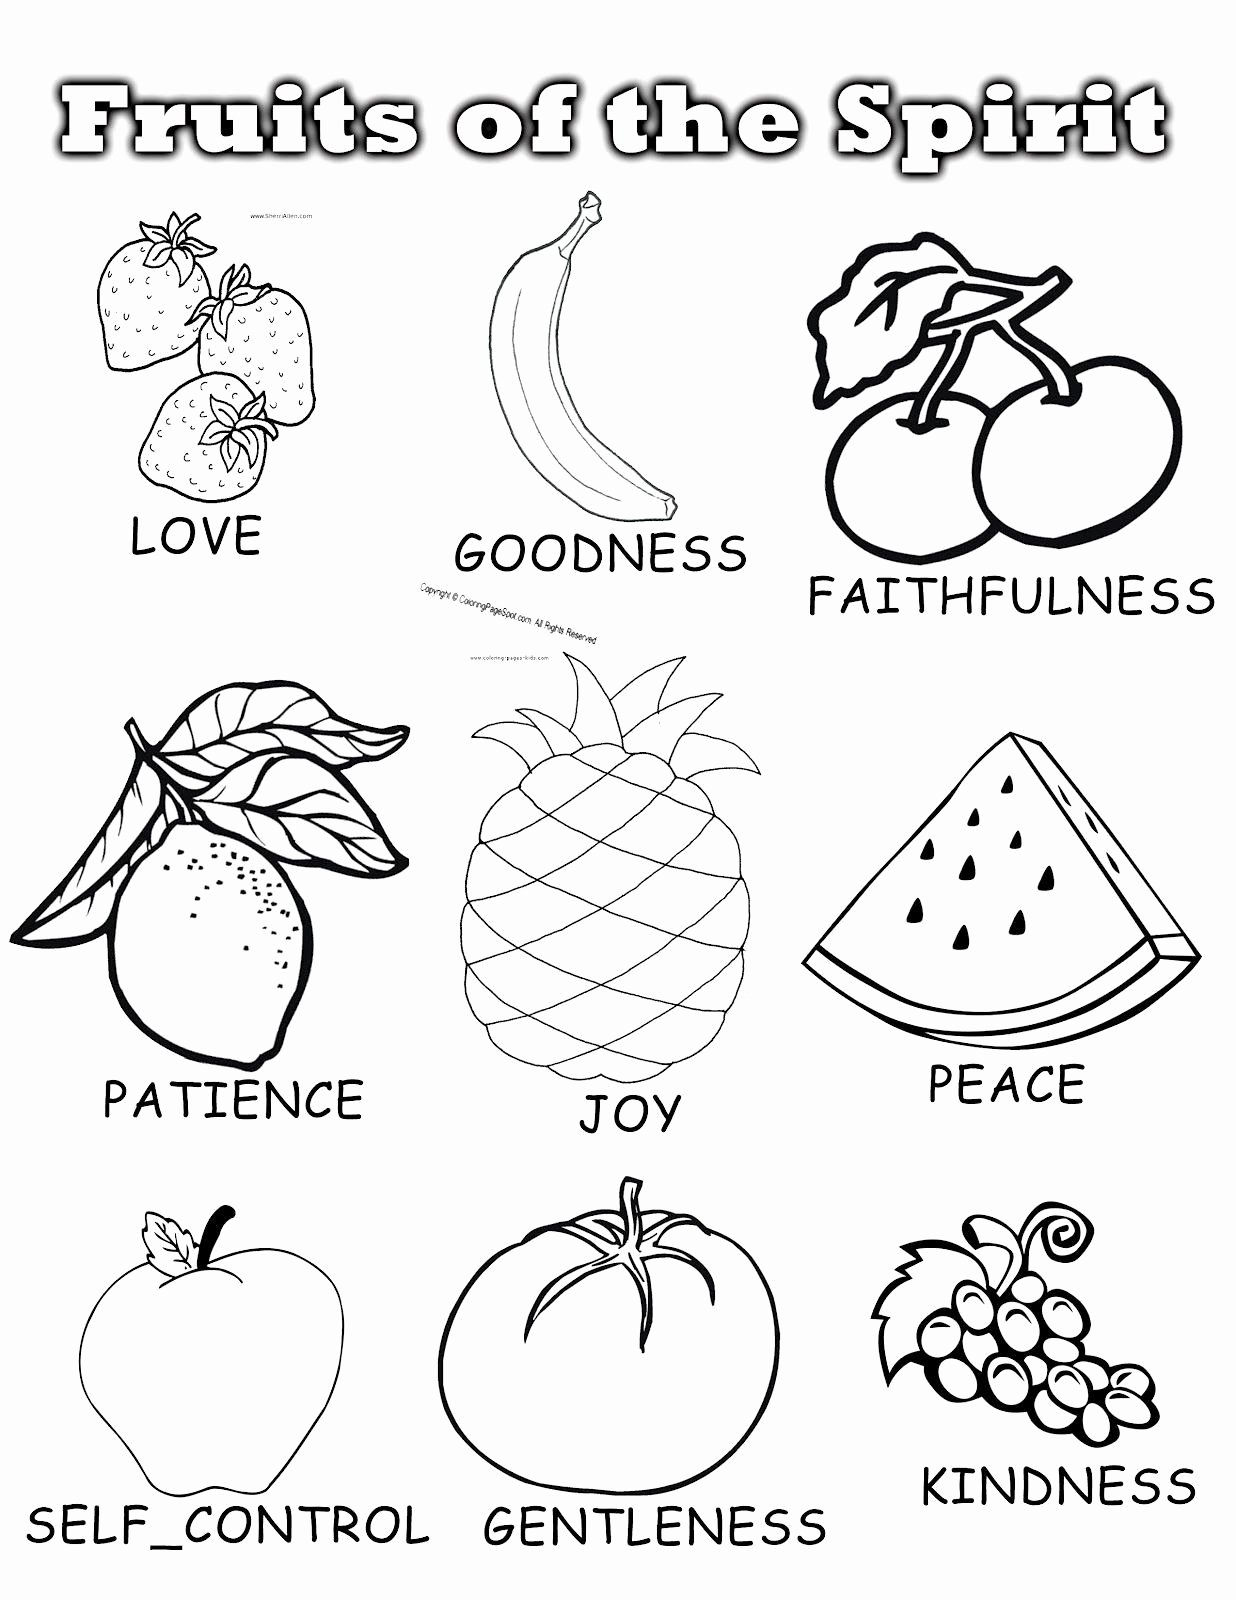 Fruits Of the Spirit Worksheets Ideas Fruit the Spirit Worksheets for Adults